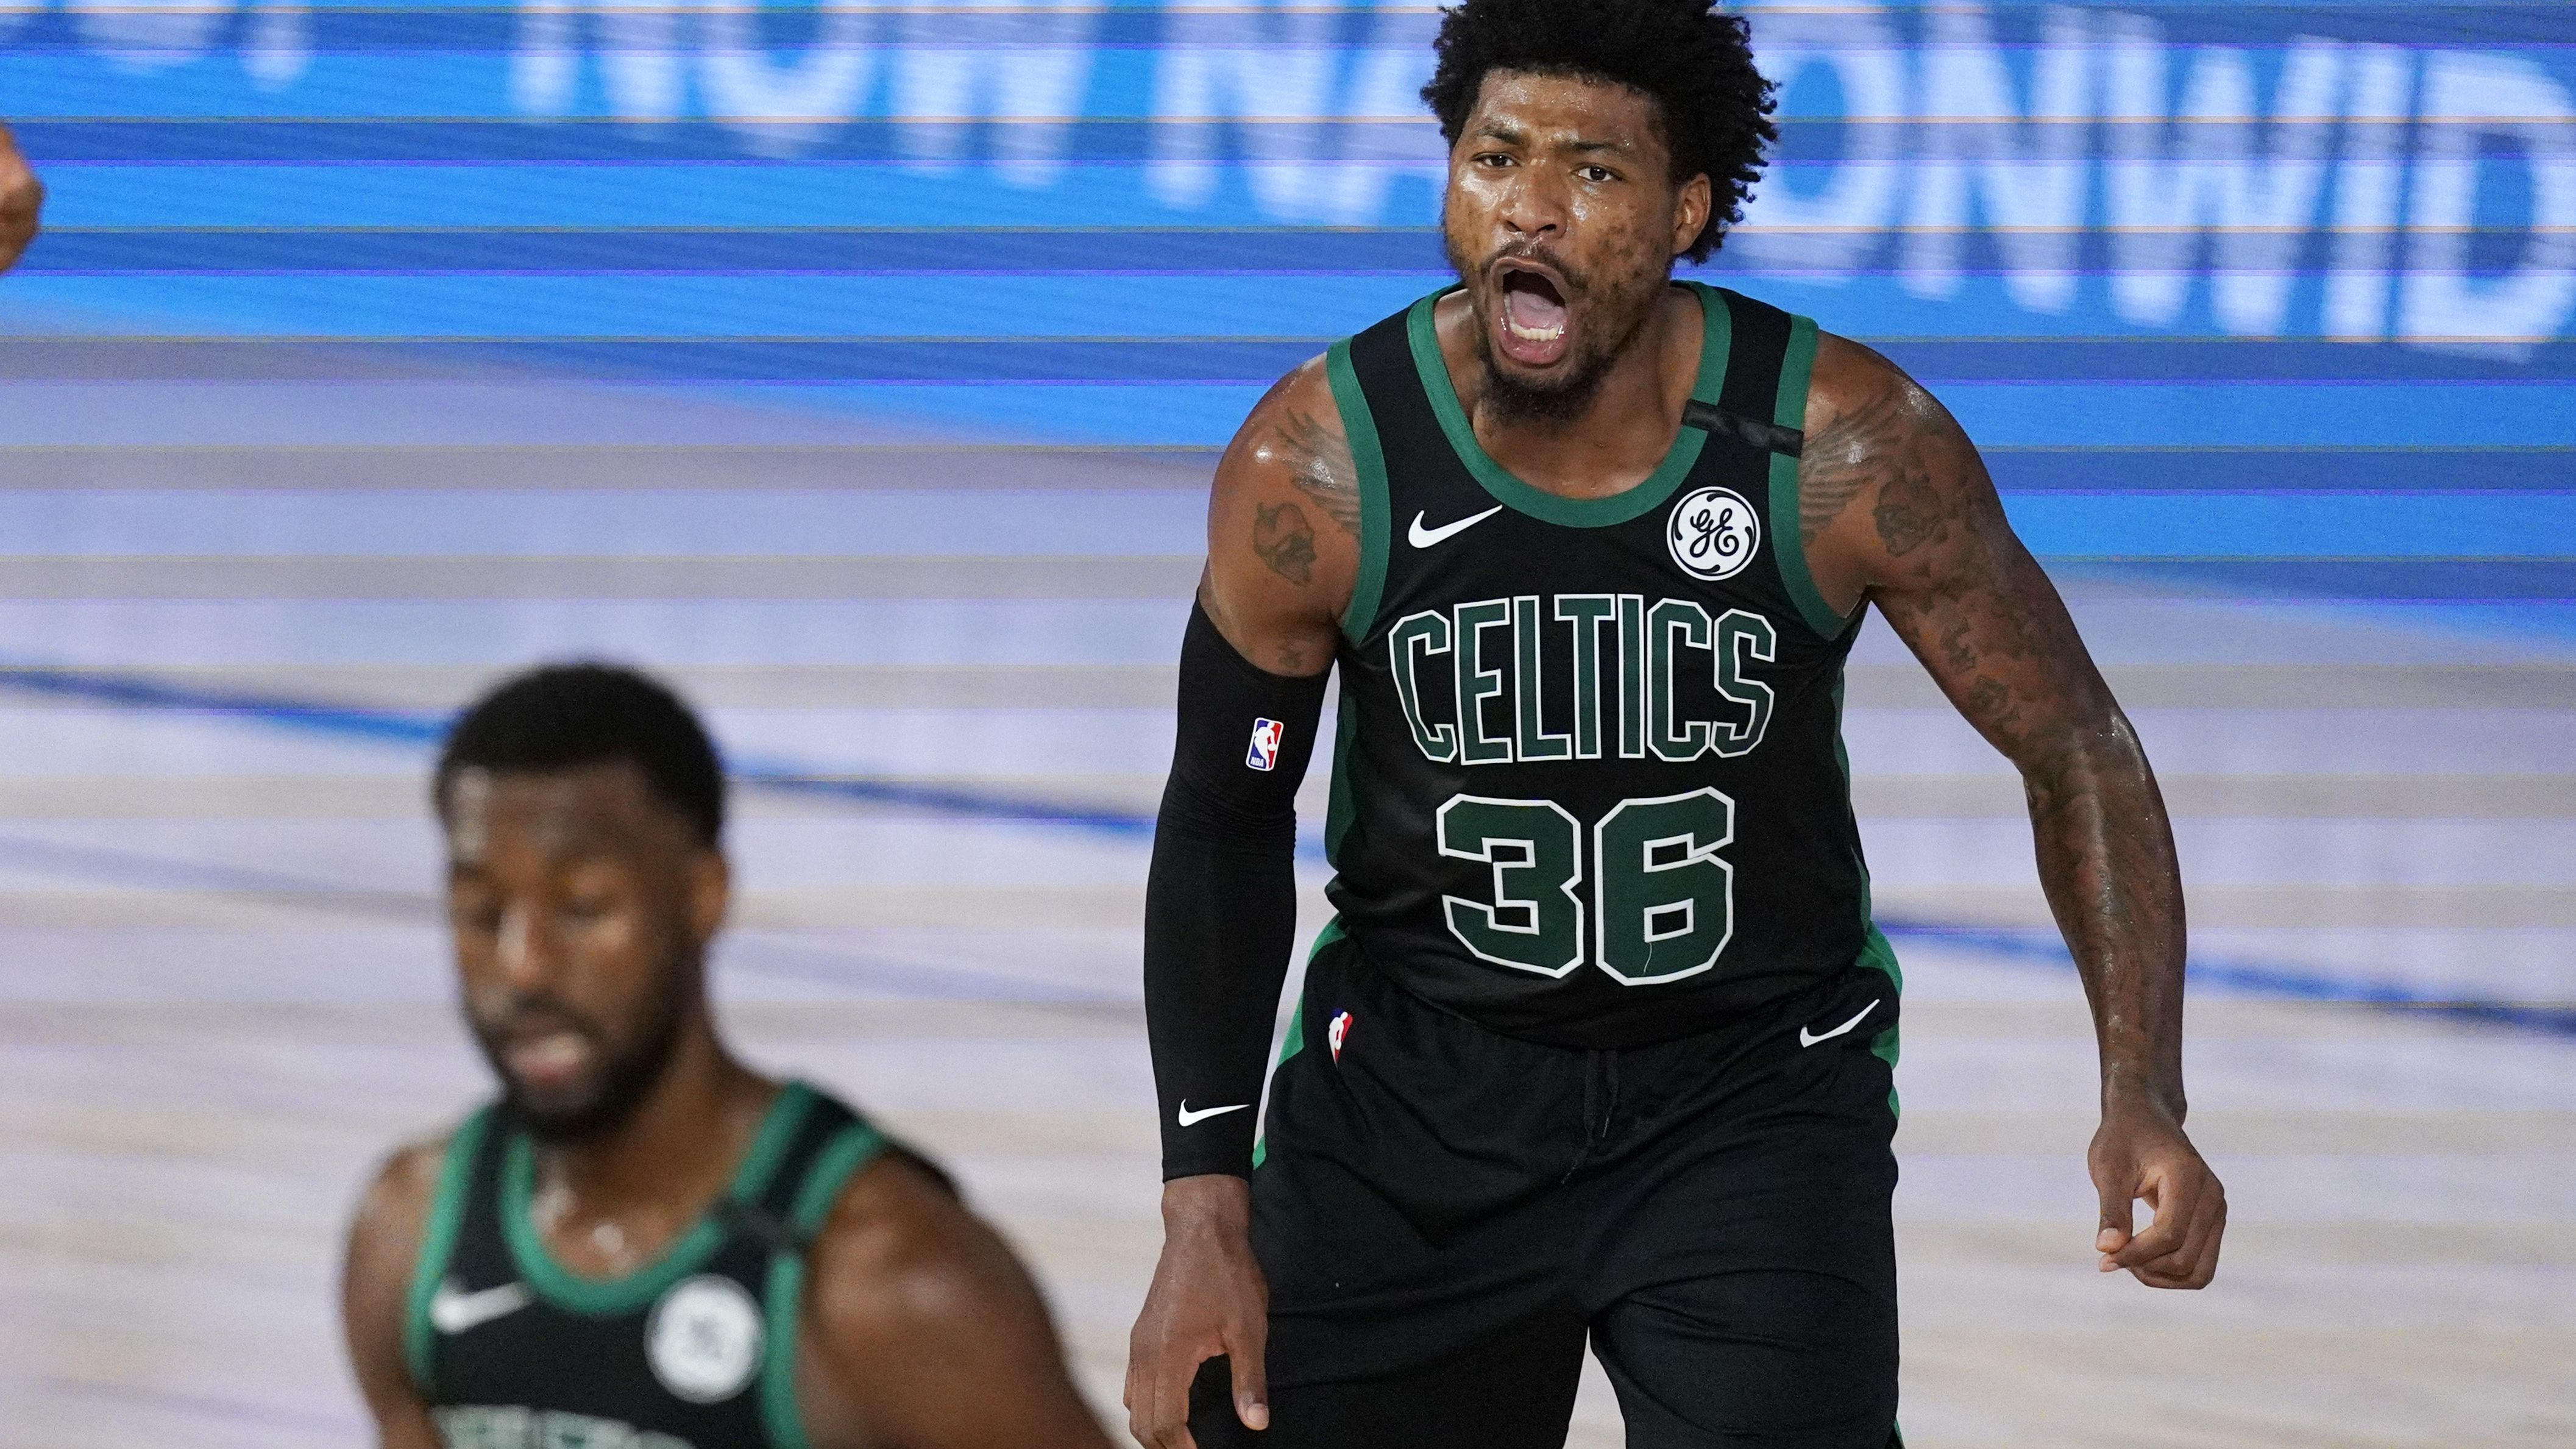 Boston Celtics guard Marcus Smart yells at his team after scoring.